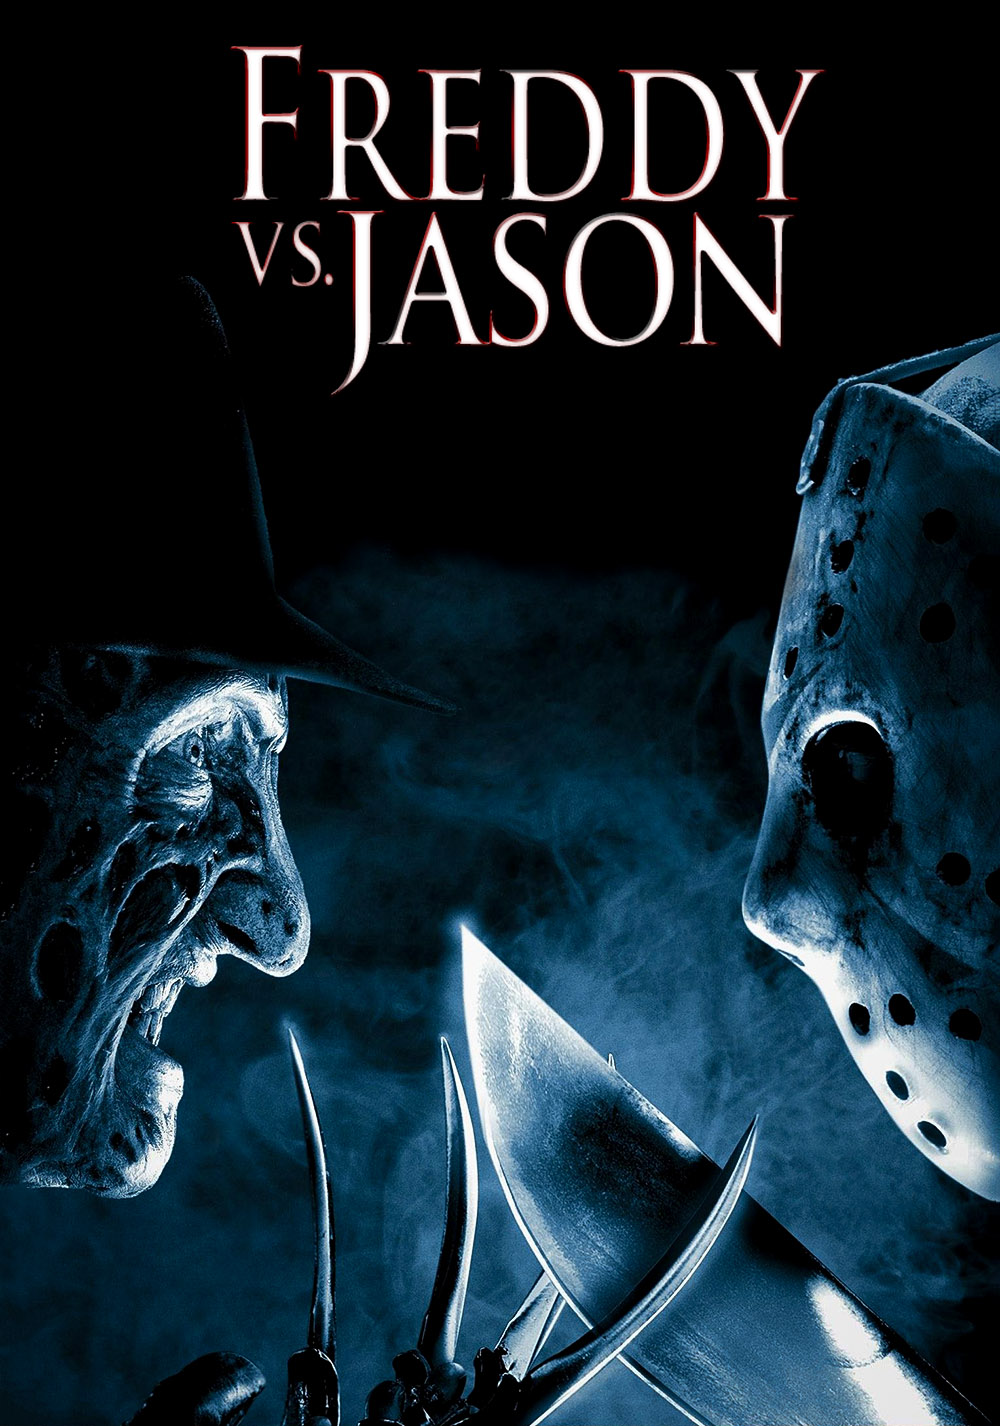 Freddy Vs. Jason.jpg